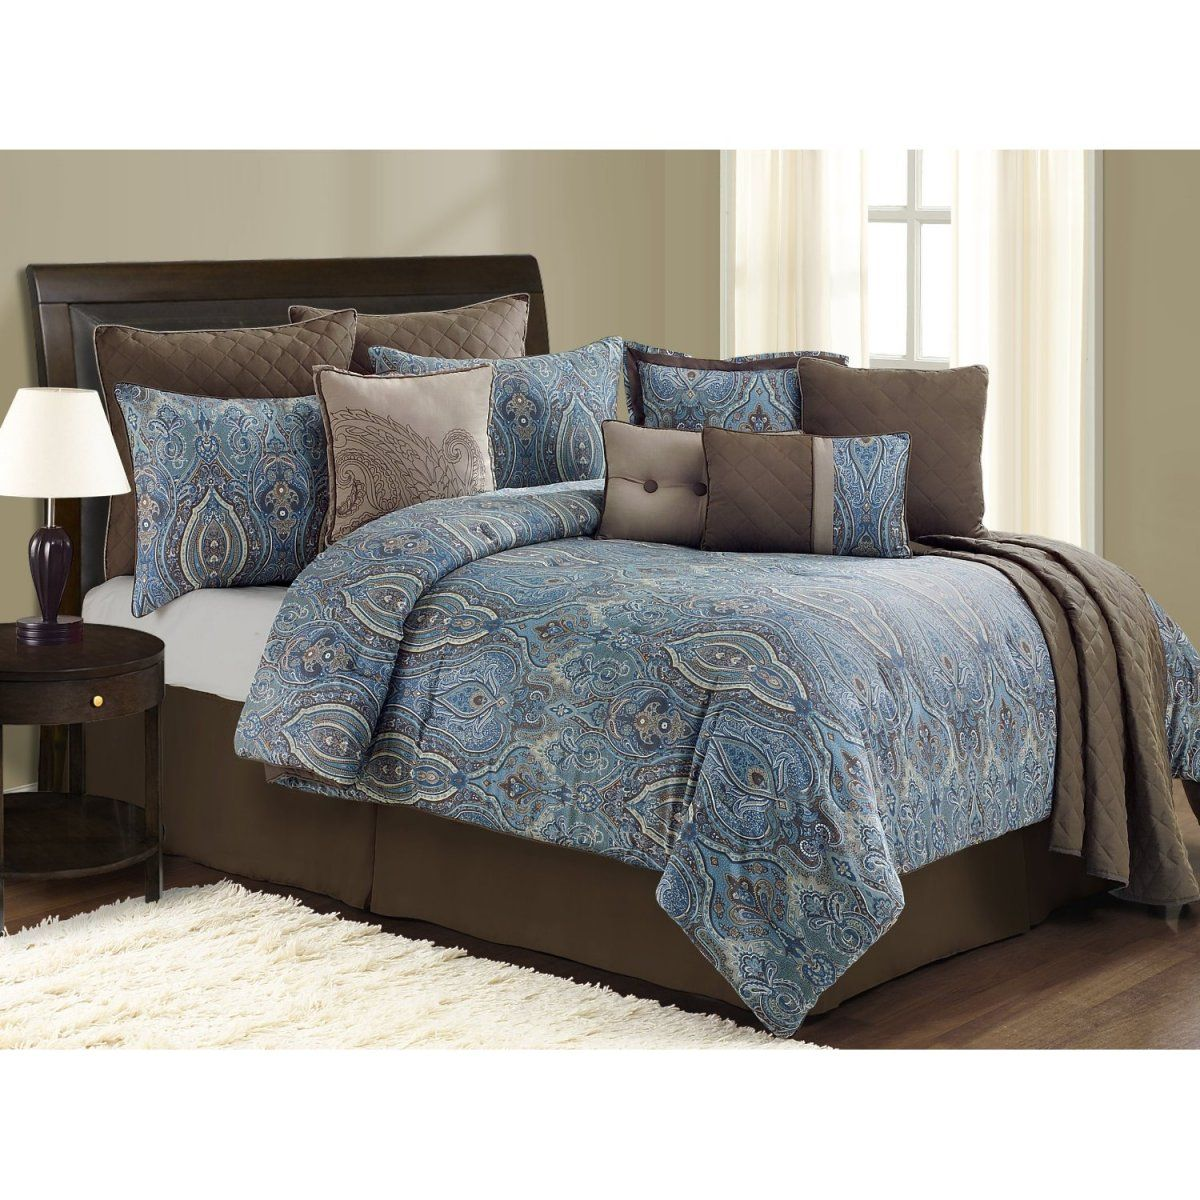 Best Blue And Brown Floral Damask King Bedspread With 100 Cotton Comforter Sets King Size And Solid 640 x 480